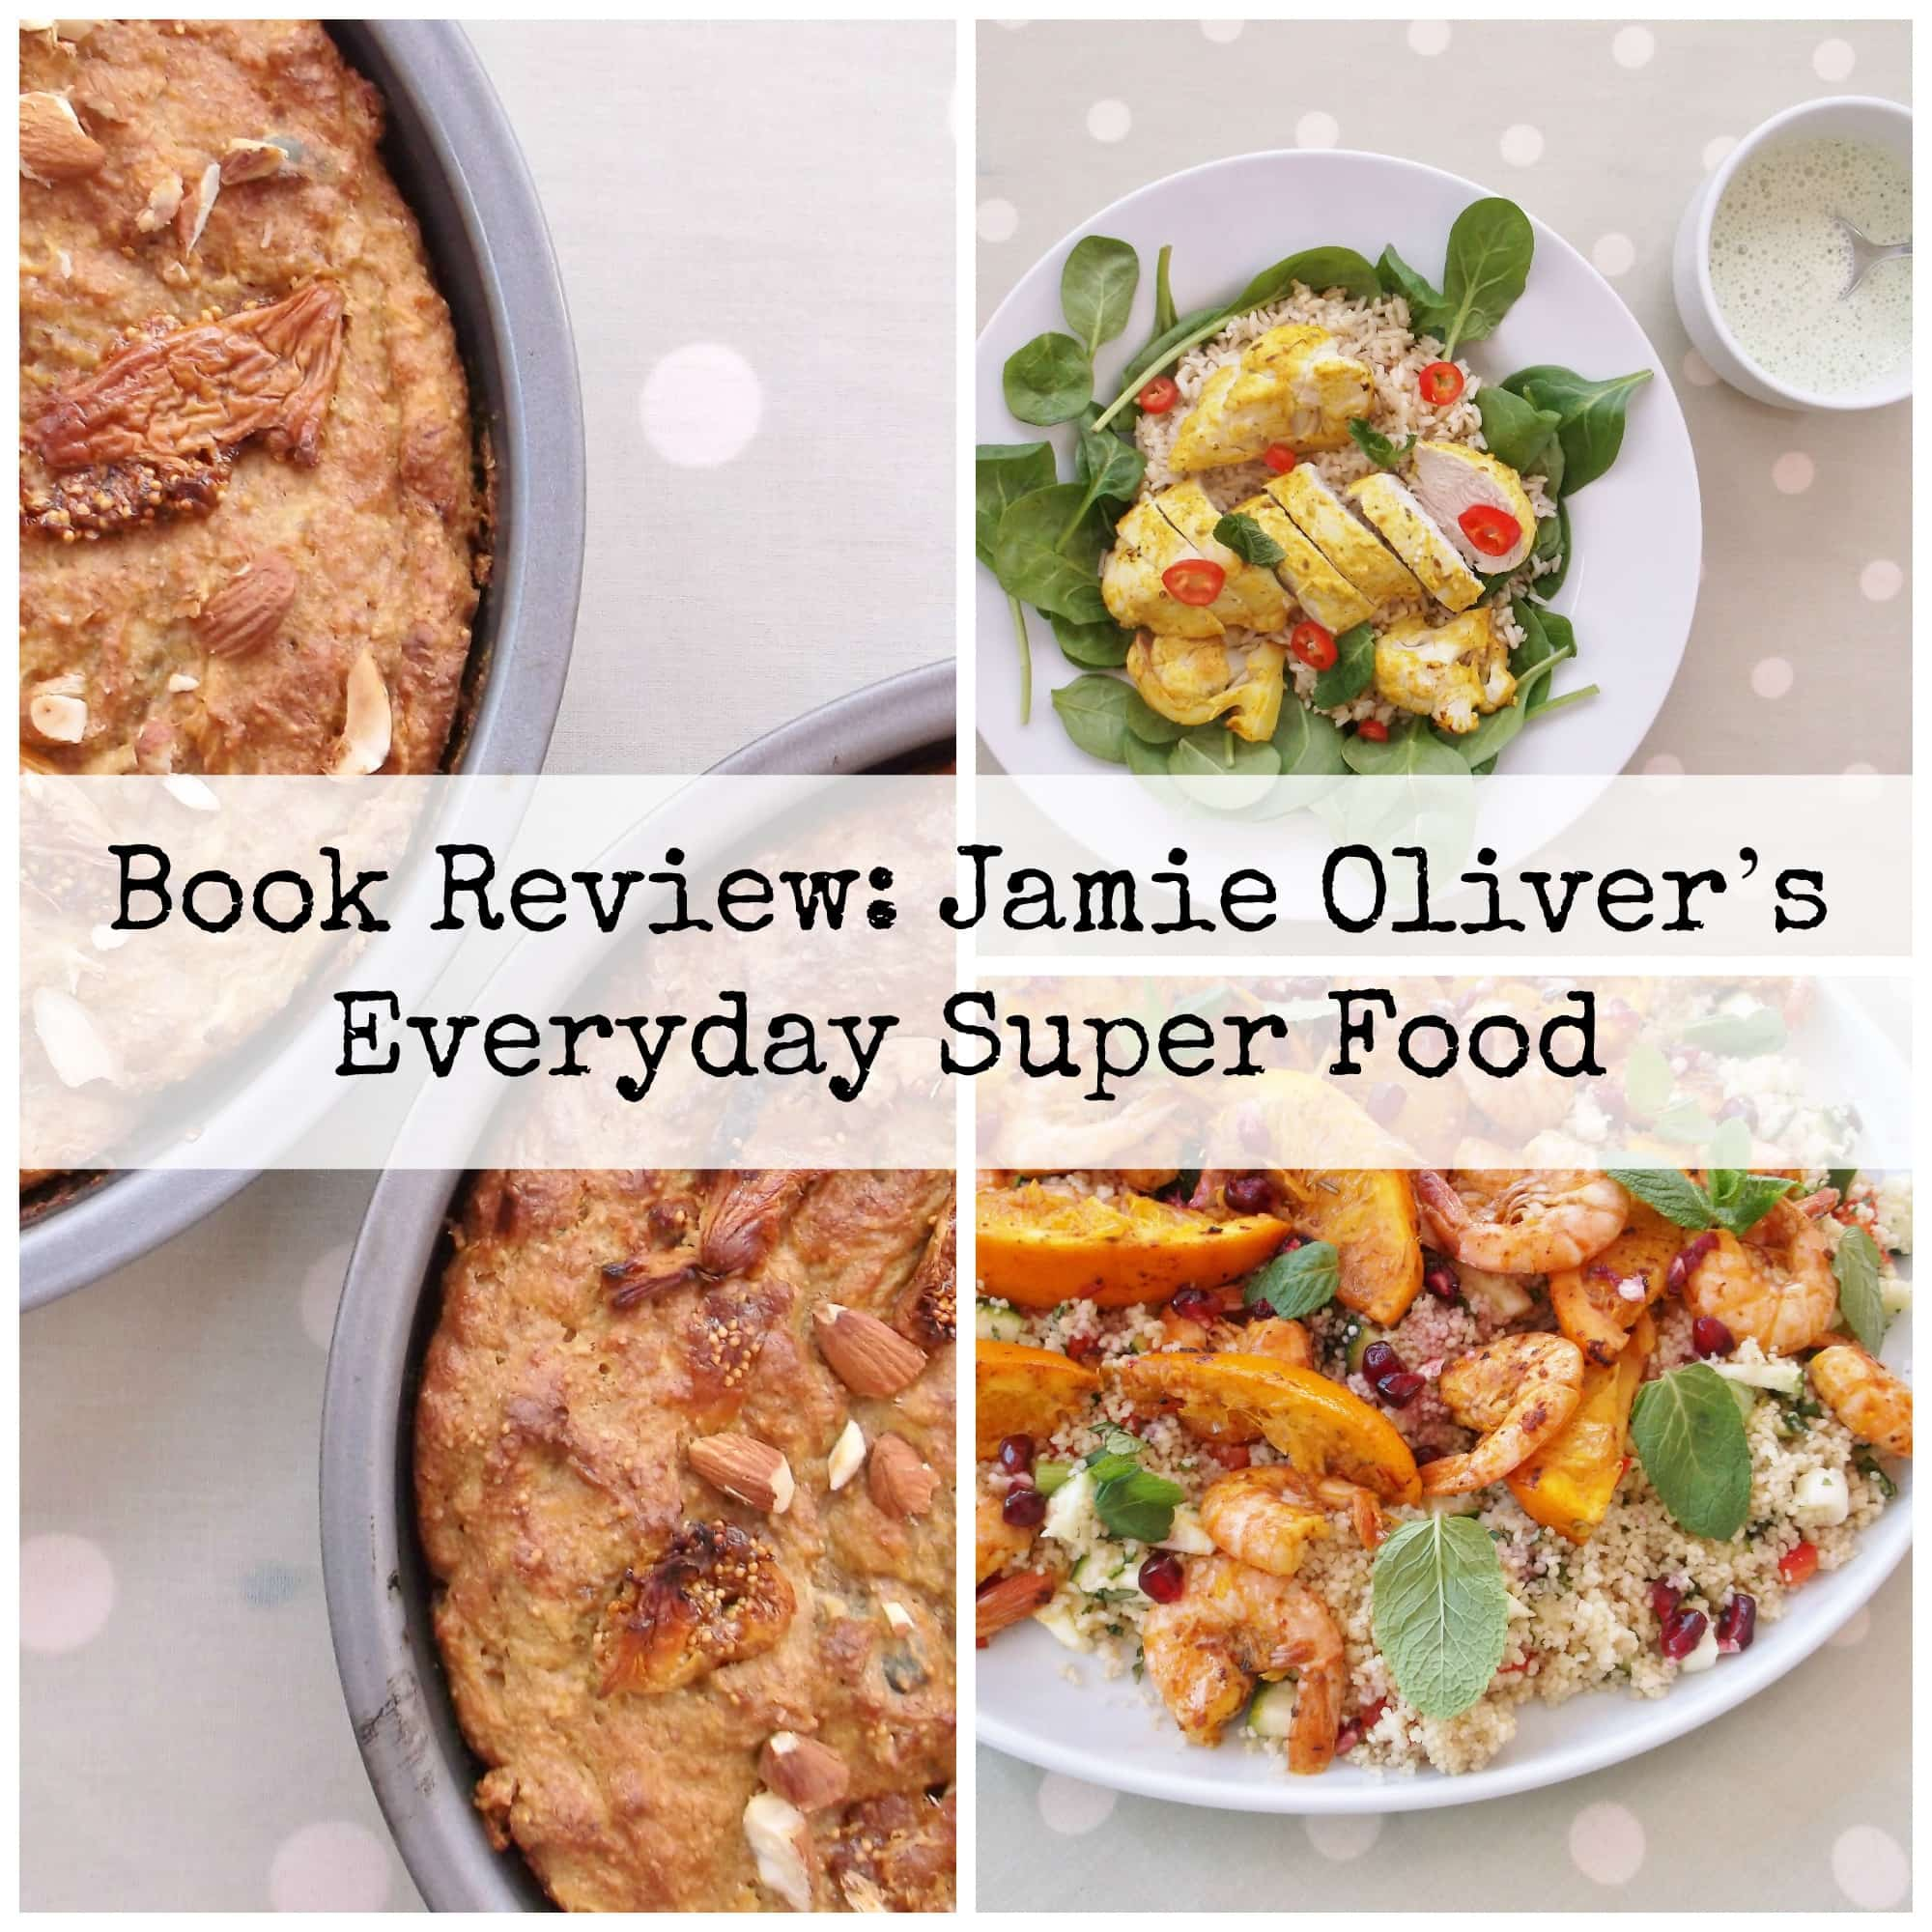 Review of jamie olivers everyday super food easy peasy foodie jamie olivers everyday super food book review forumfinder Image collections